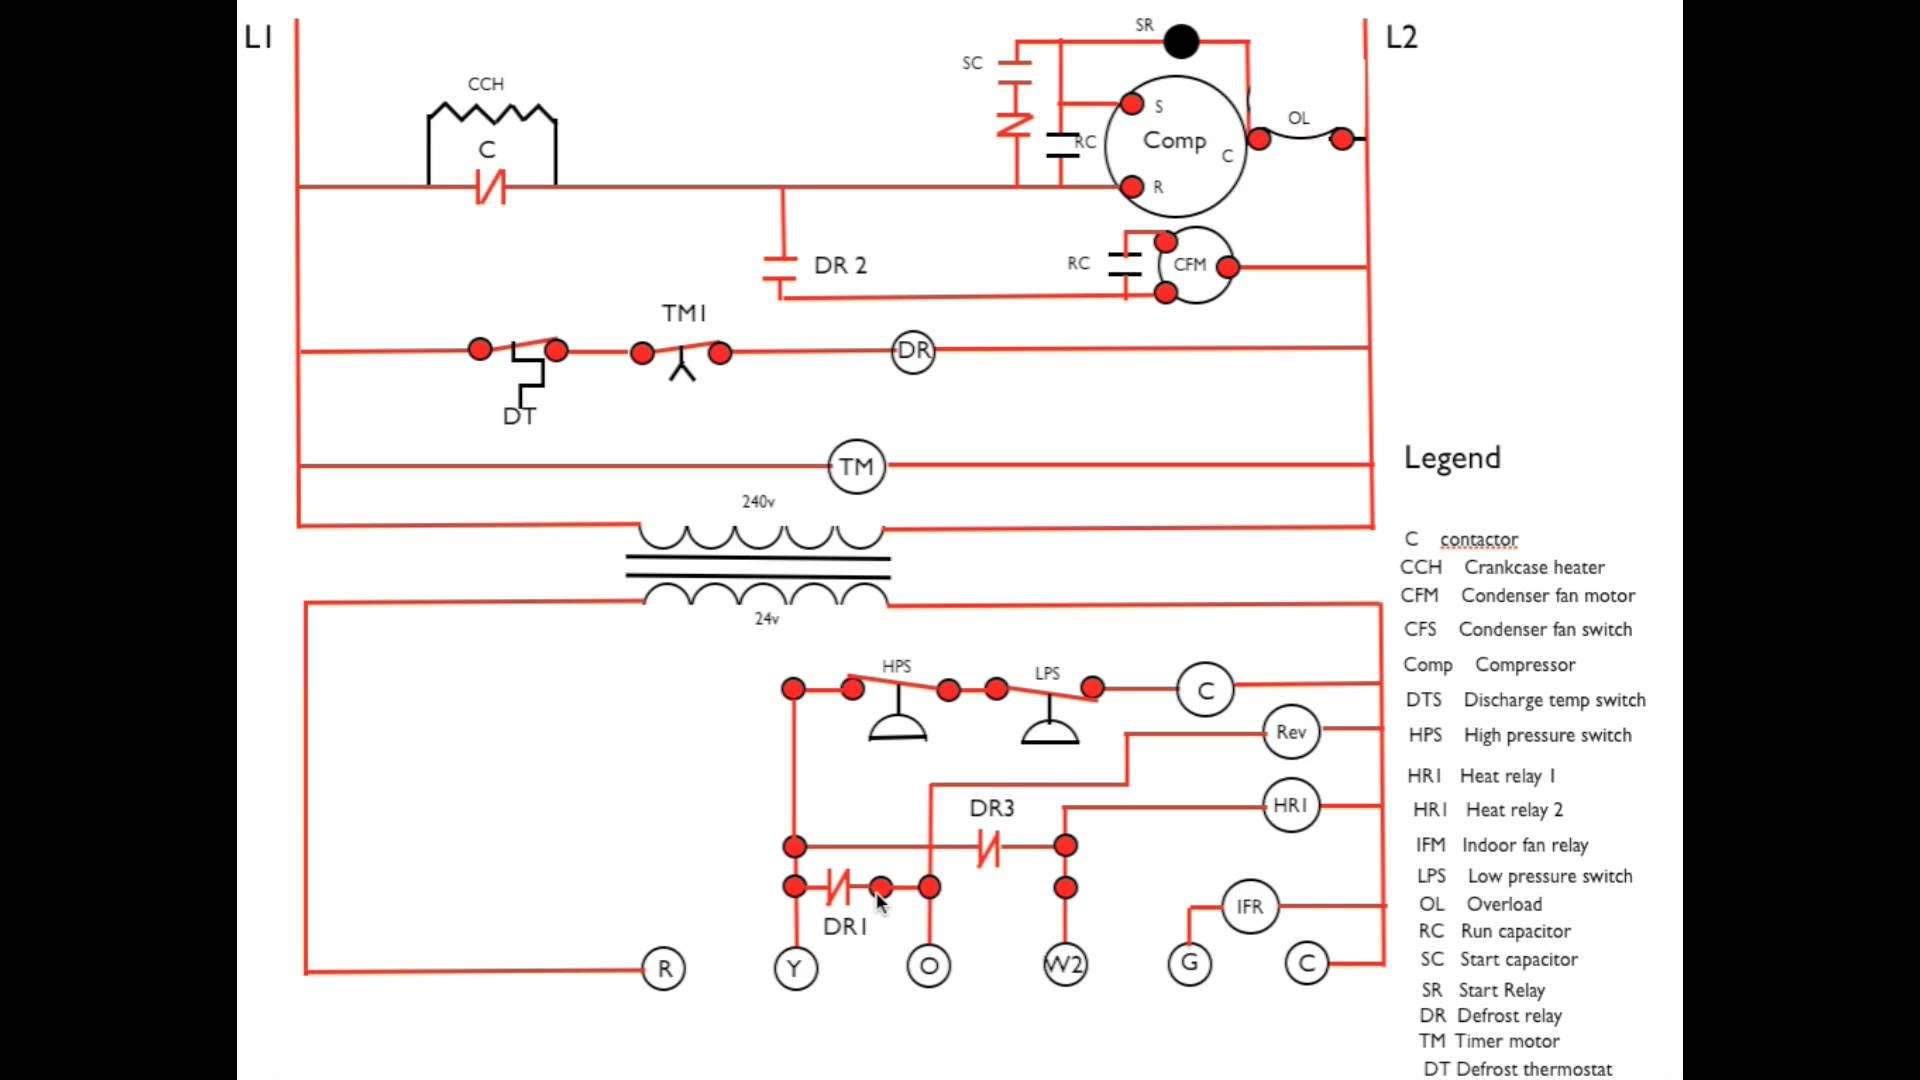 goodman wiring diagram air conditioner where is your gallbladder defrost sequence explained in detail | appliance video